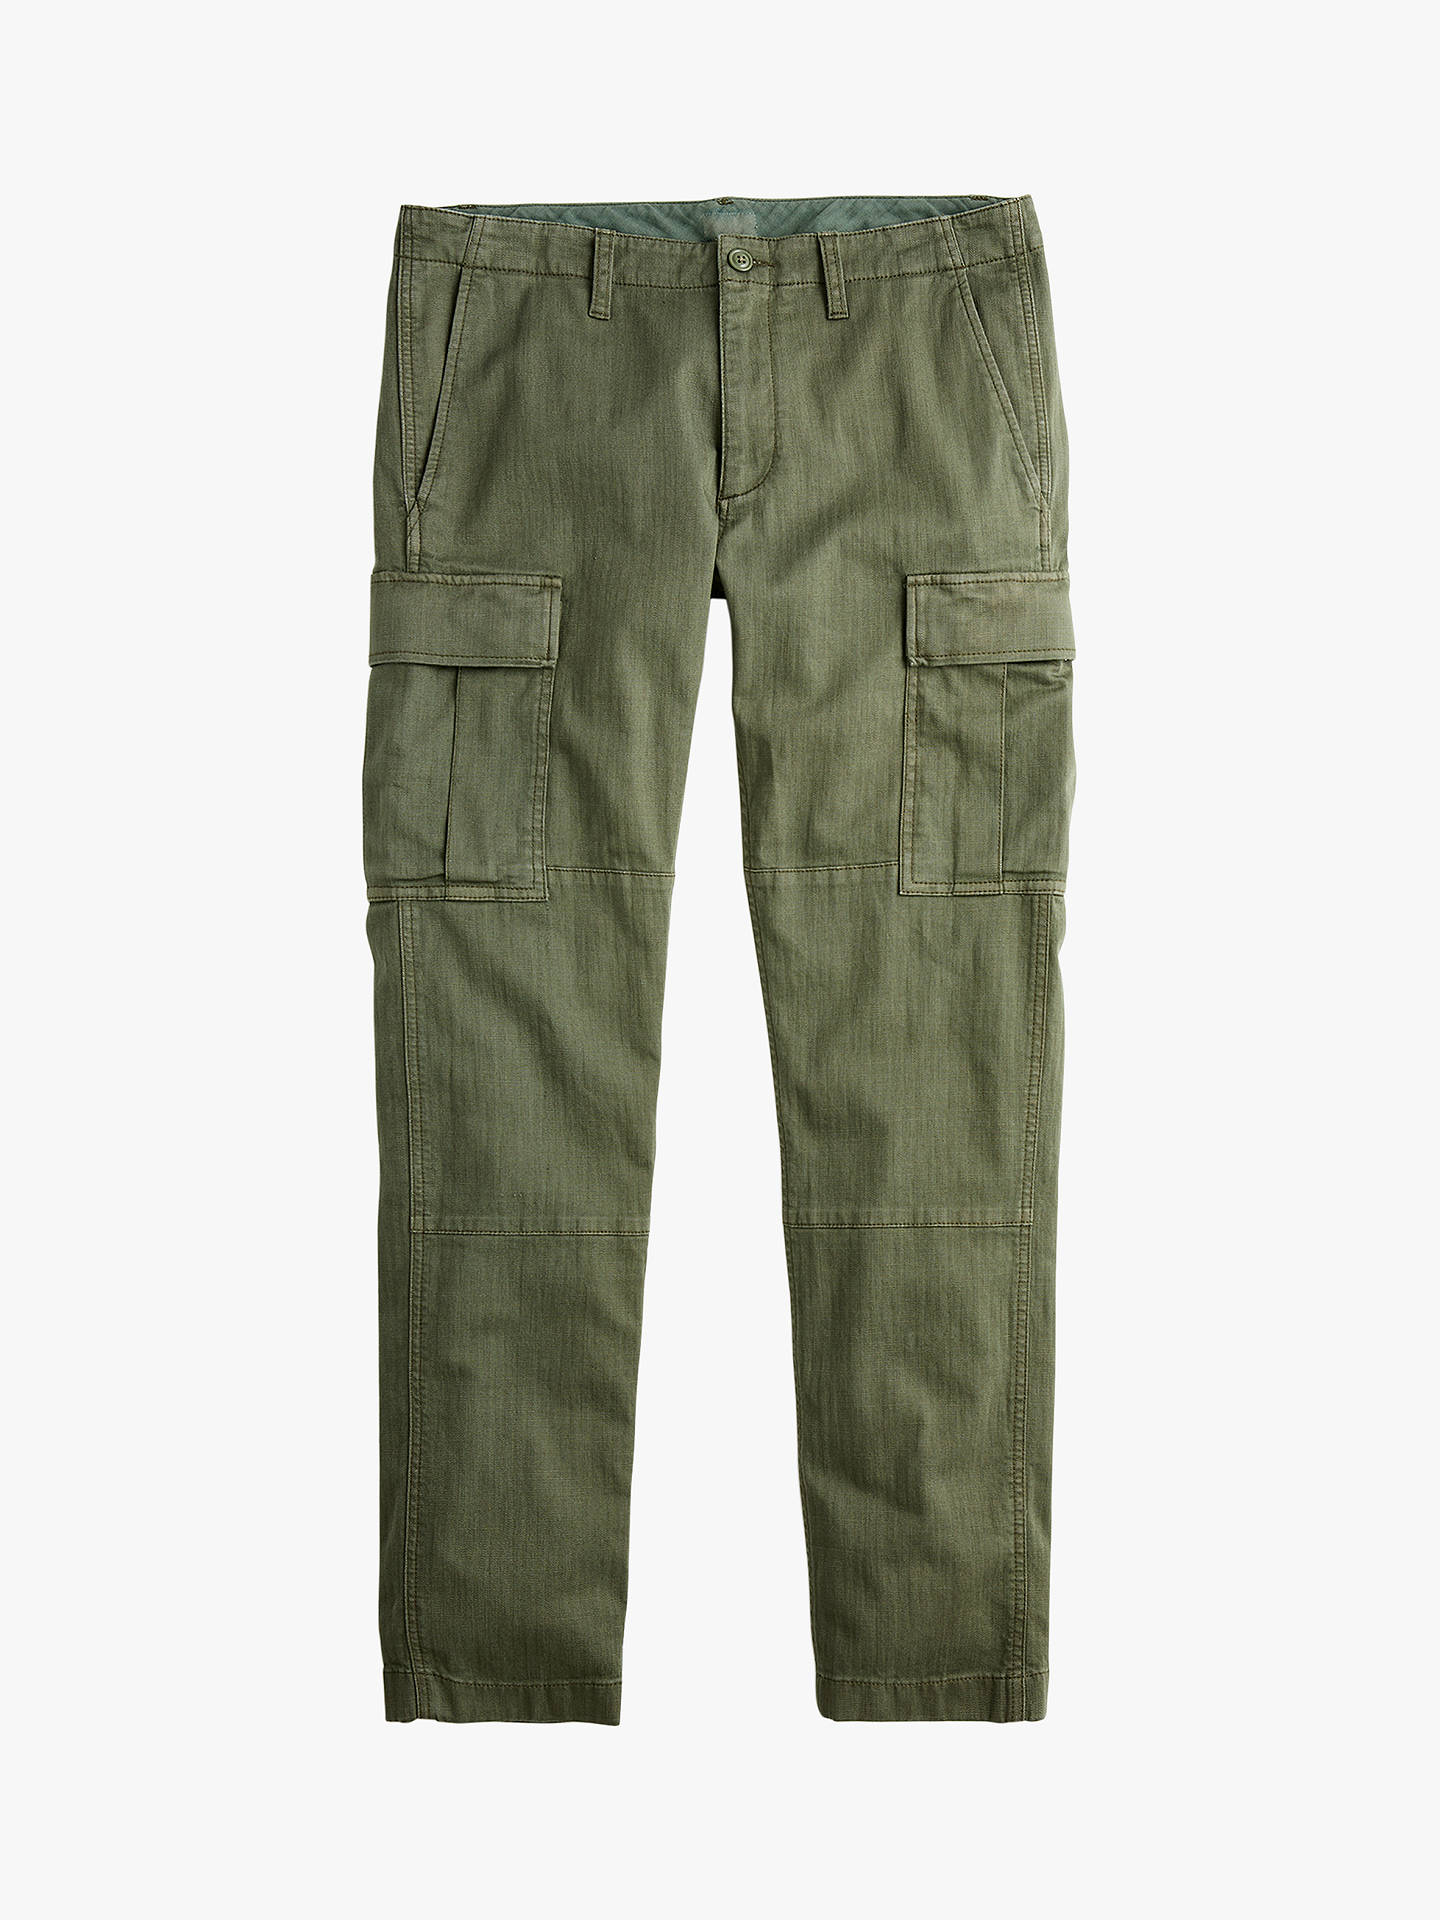 NEW MEN/'S J CREW 484 SLIM FIT STRETCH CARGO PANTS IN GARMENT DYED HERRINGBONE